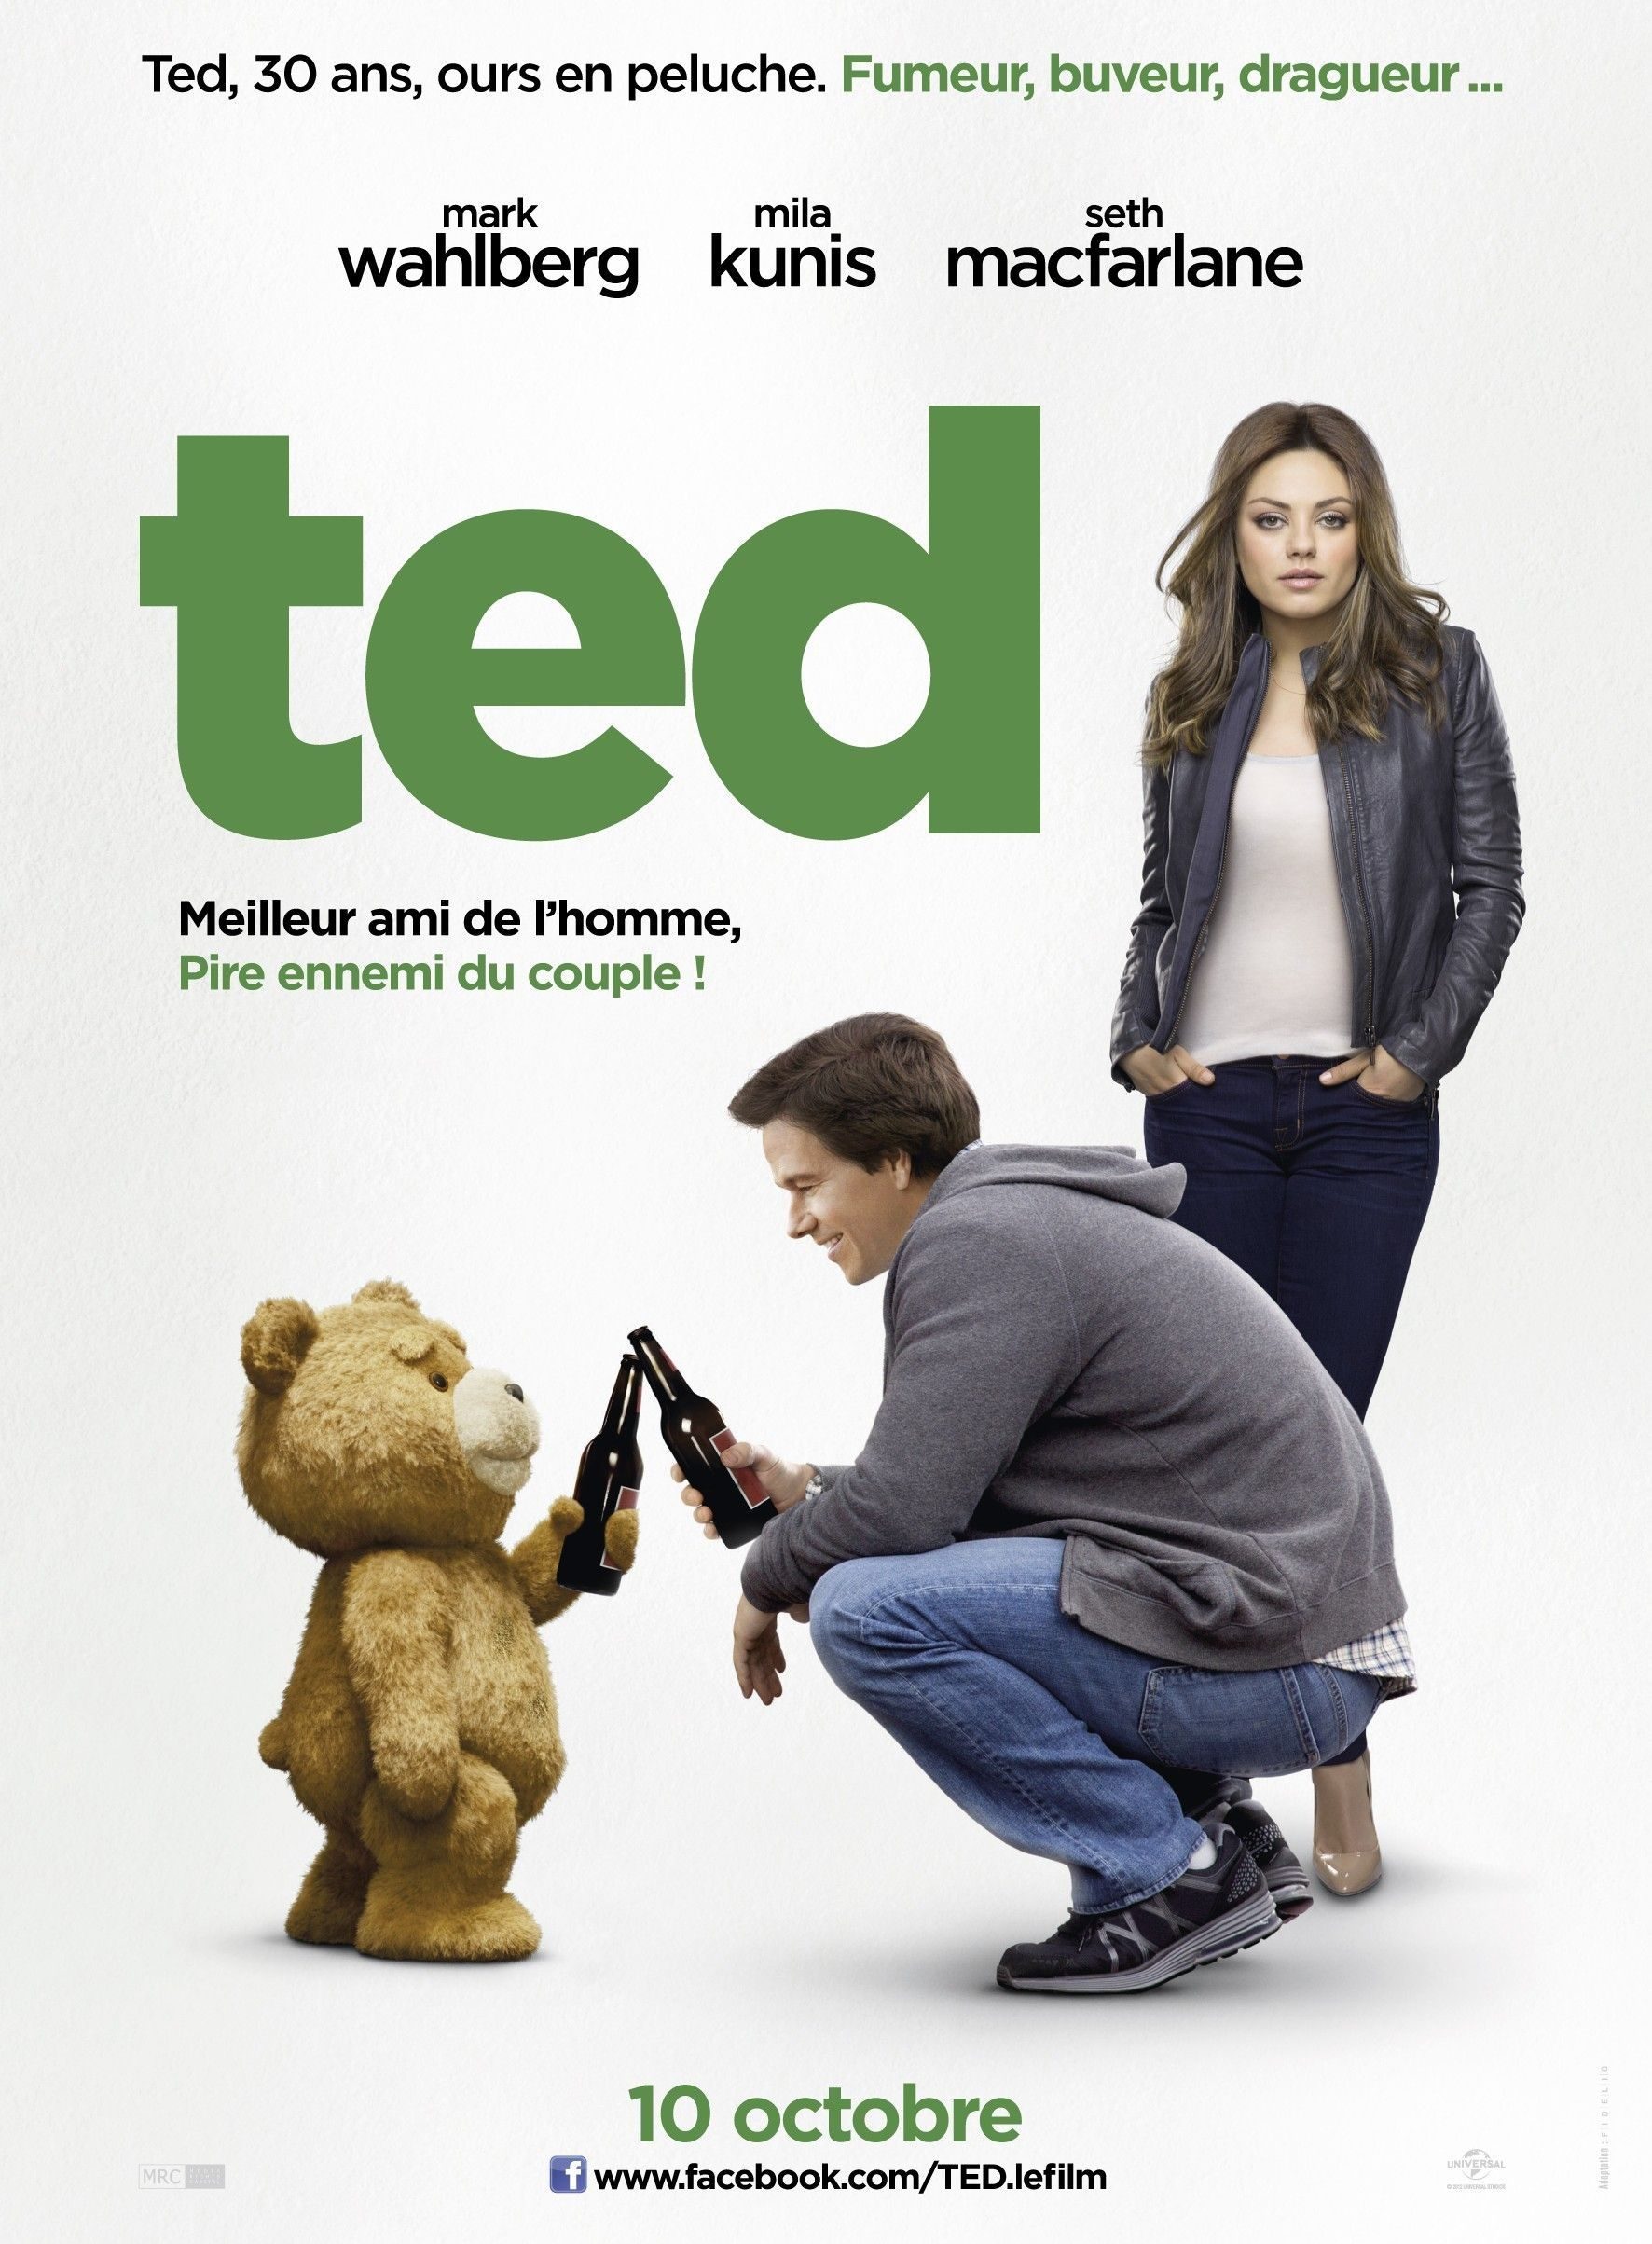 Ted 2 Film Complet En Francais Check More At Https Www Nicolasbravo Info Ted 2 Film Complet En Francais Ted Movie Ted Online Free Movies Online